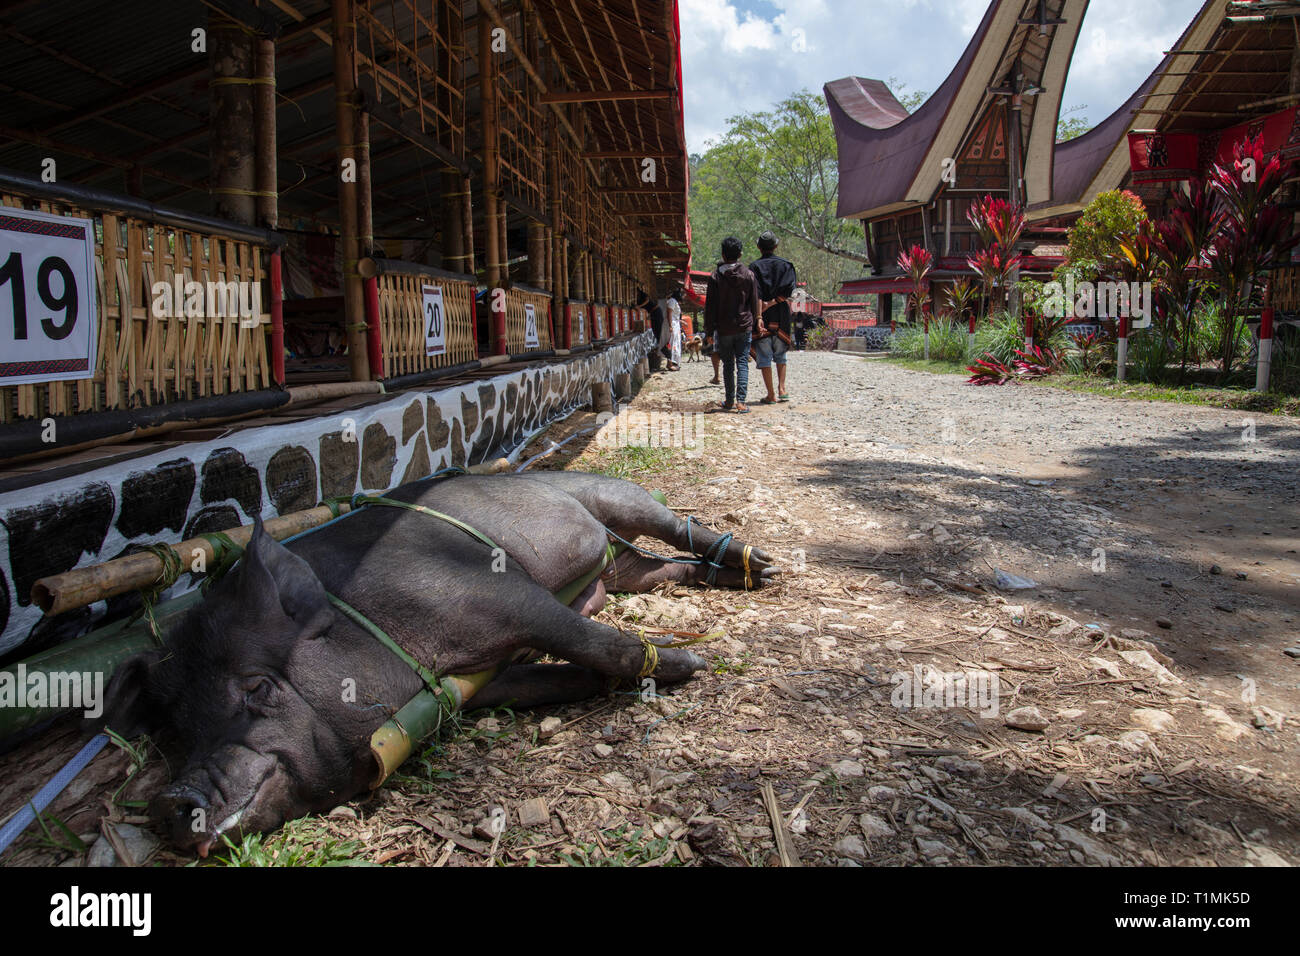 A sacrificial pig on a bamboo truss at a funeral ceremony in a village in Tana Toraja, Sulawesi, Indonesia - Stock Image